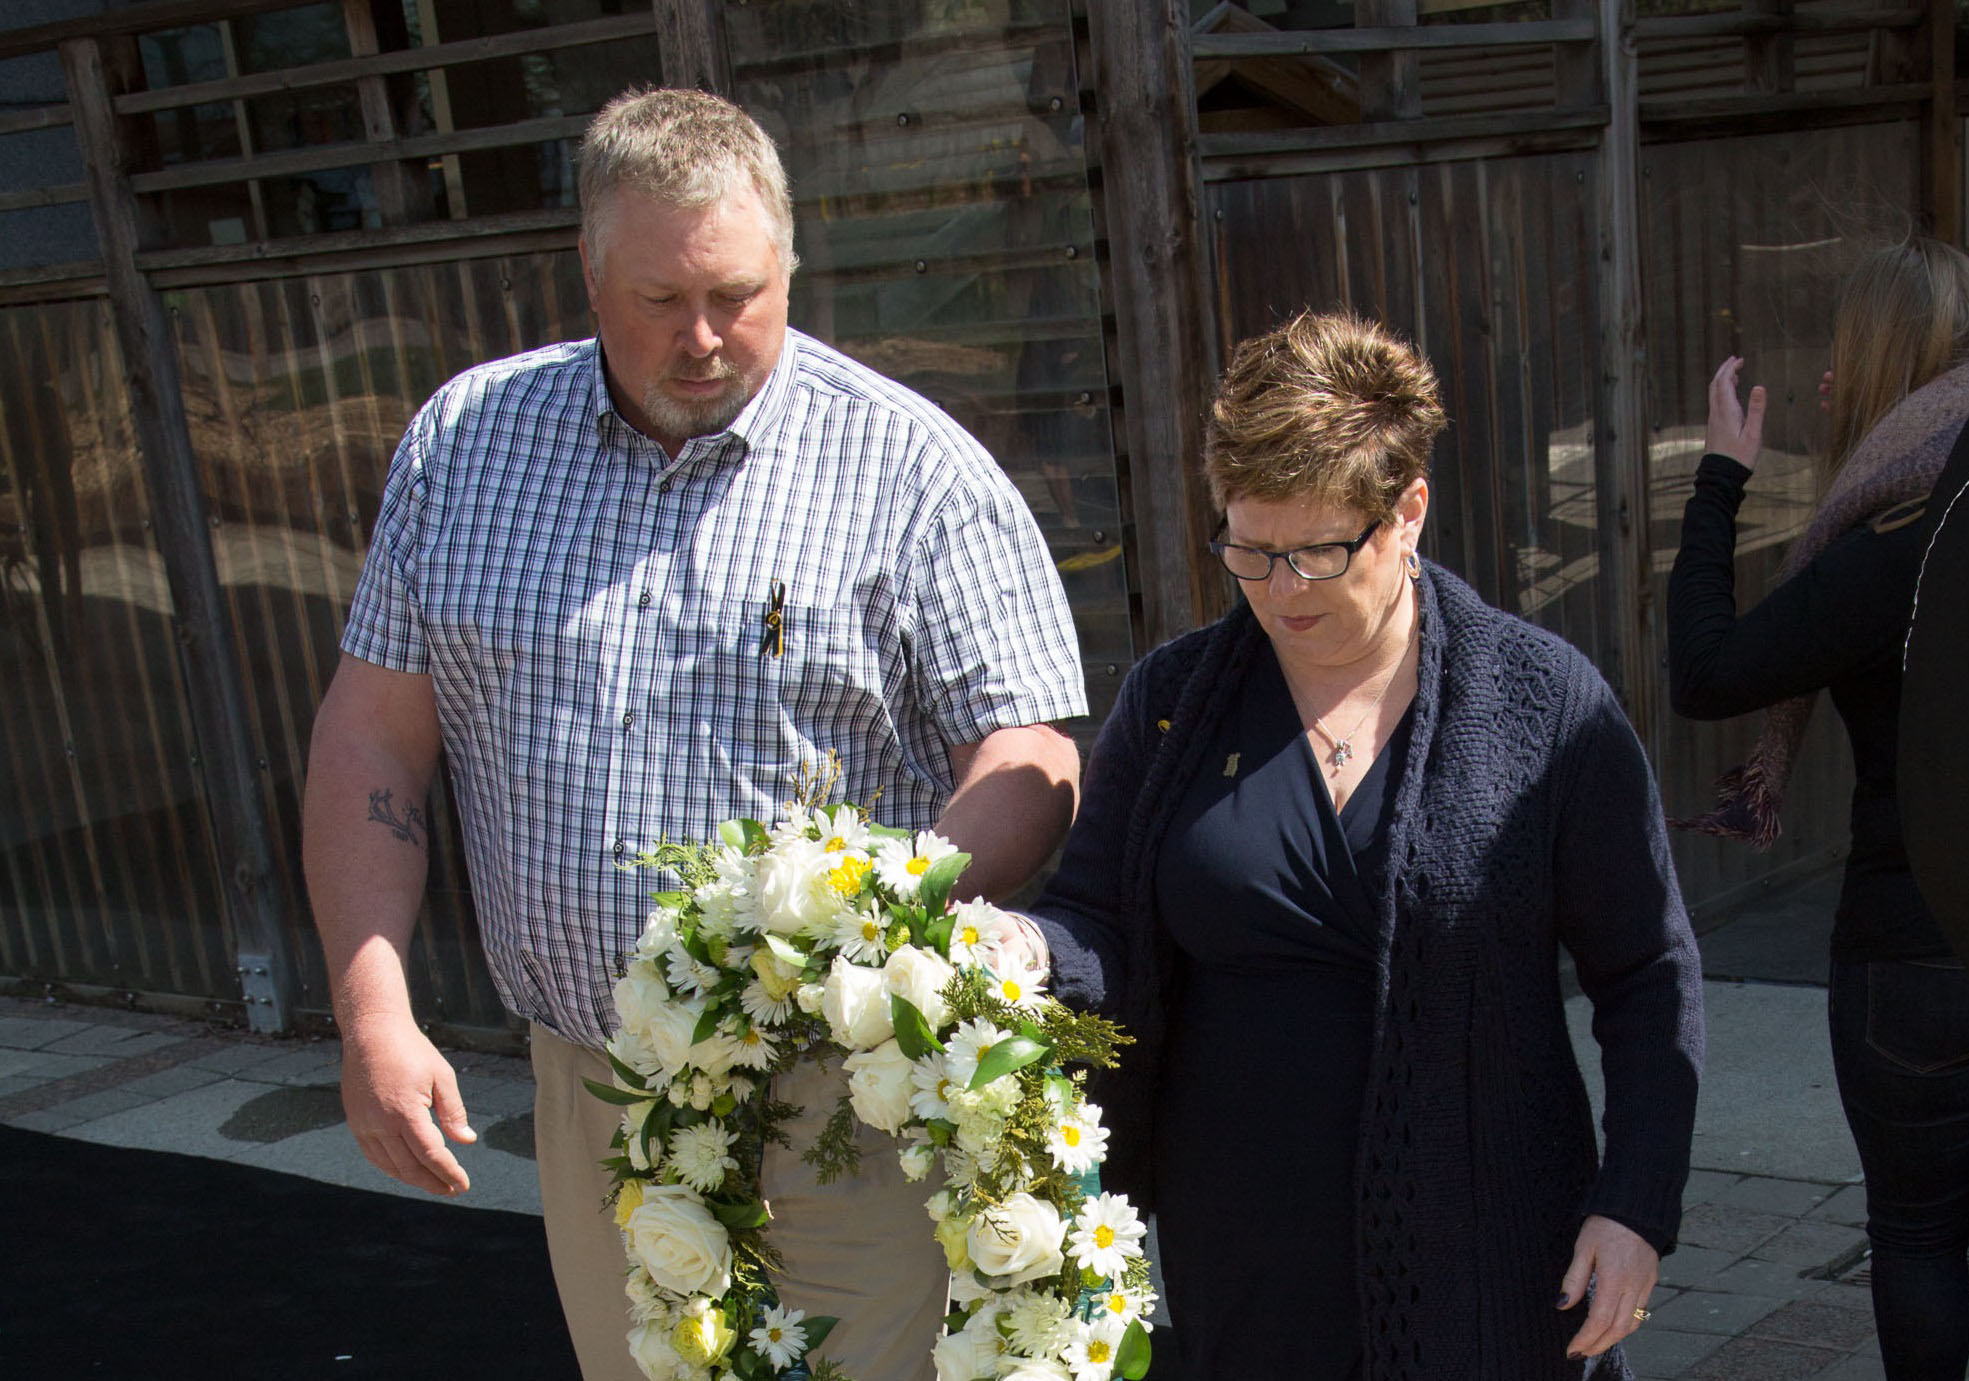 Man and woman carry yellow and white wreath